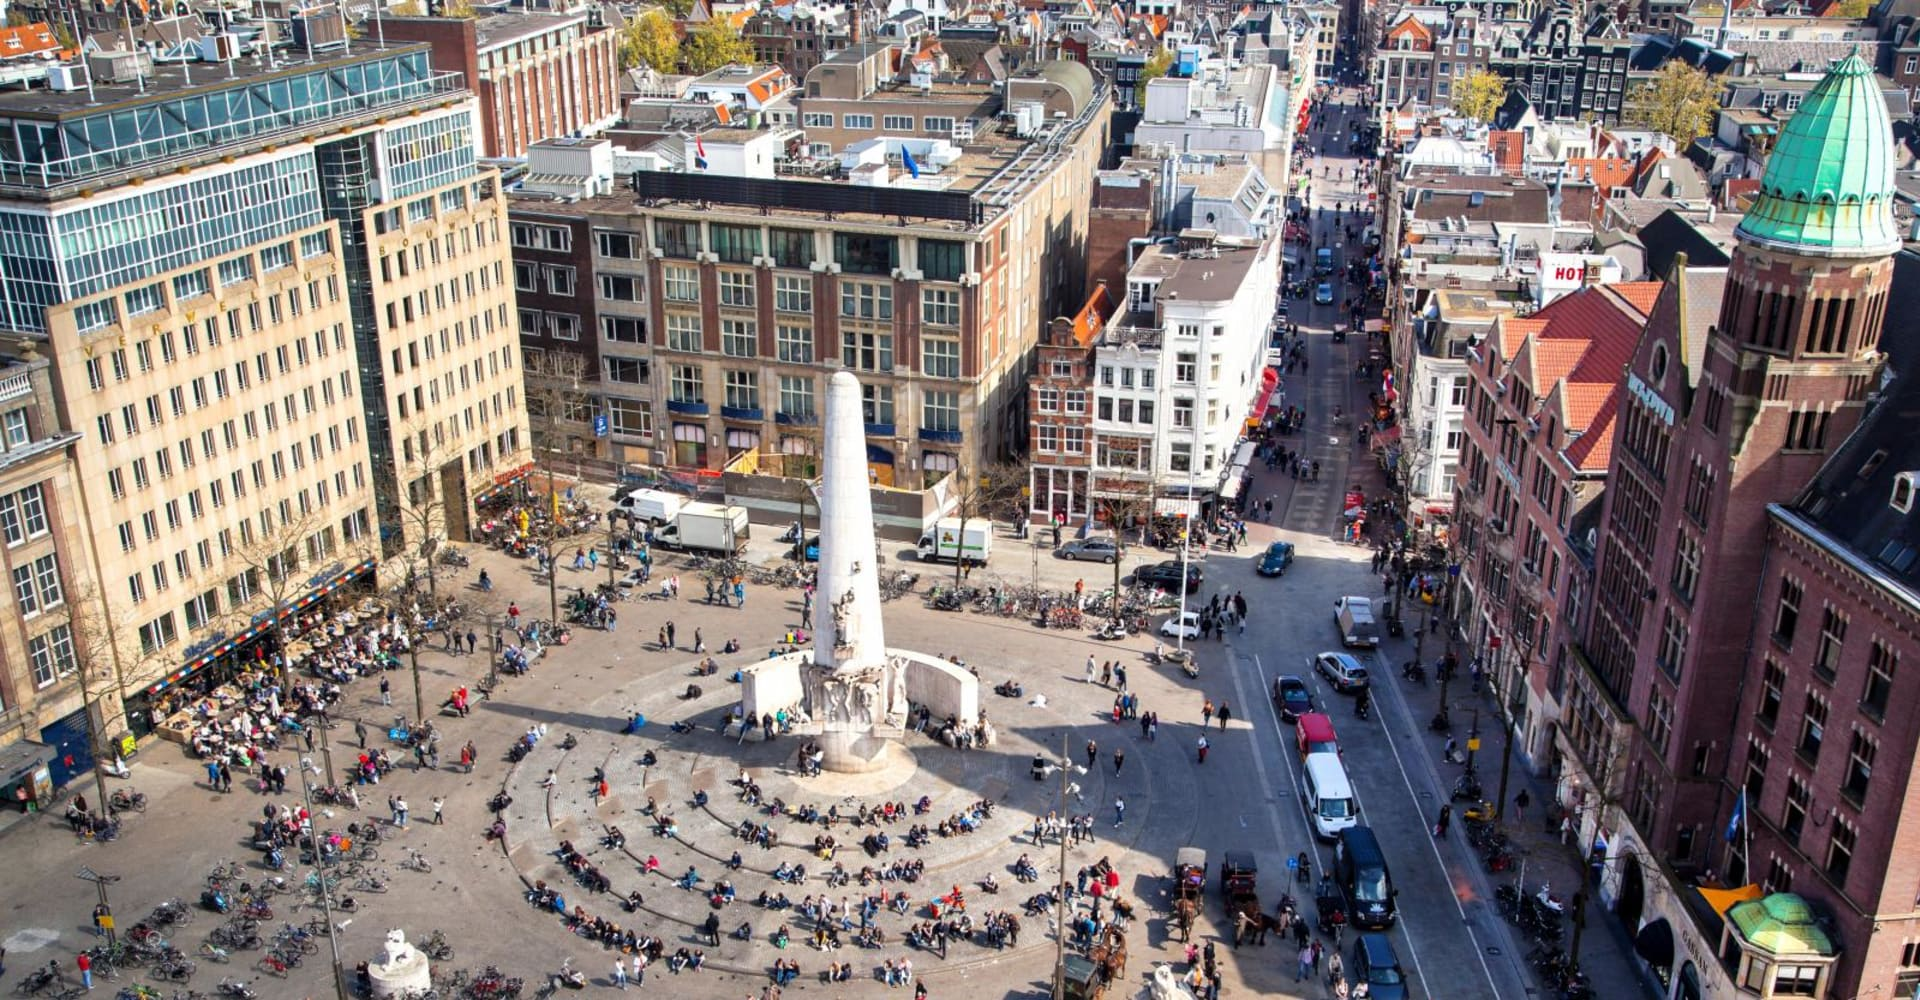 Dam Square - The Toren Amsterdam - By the Pavilions